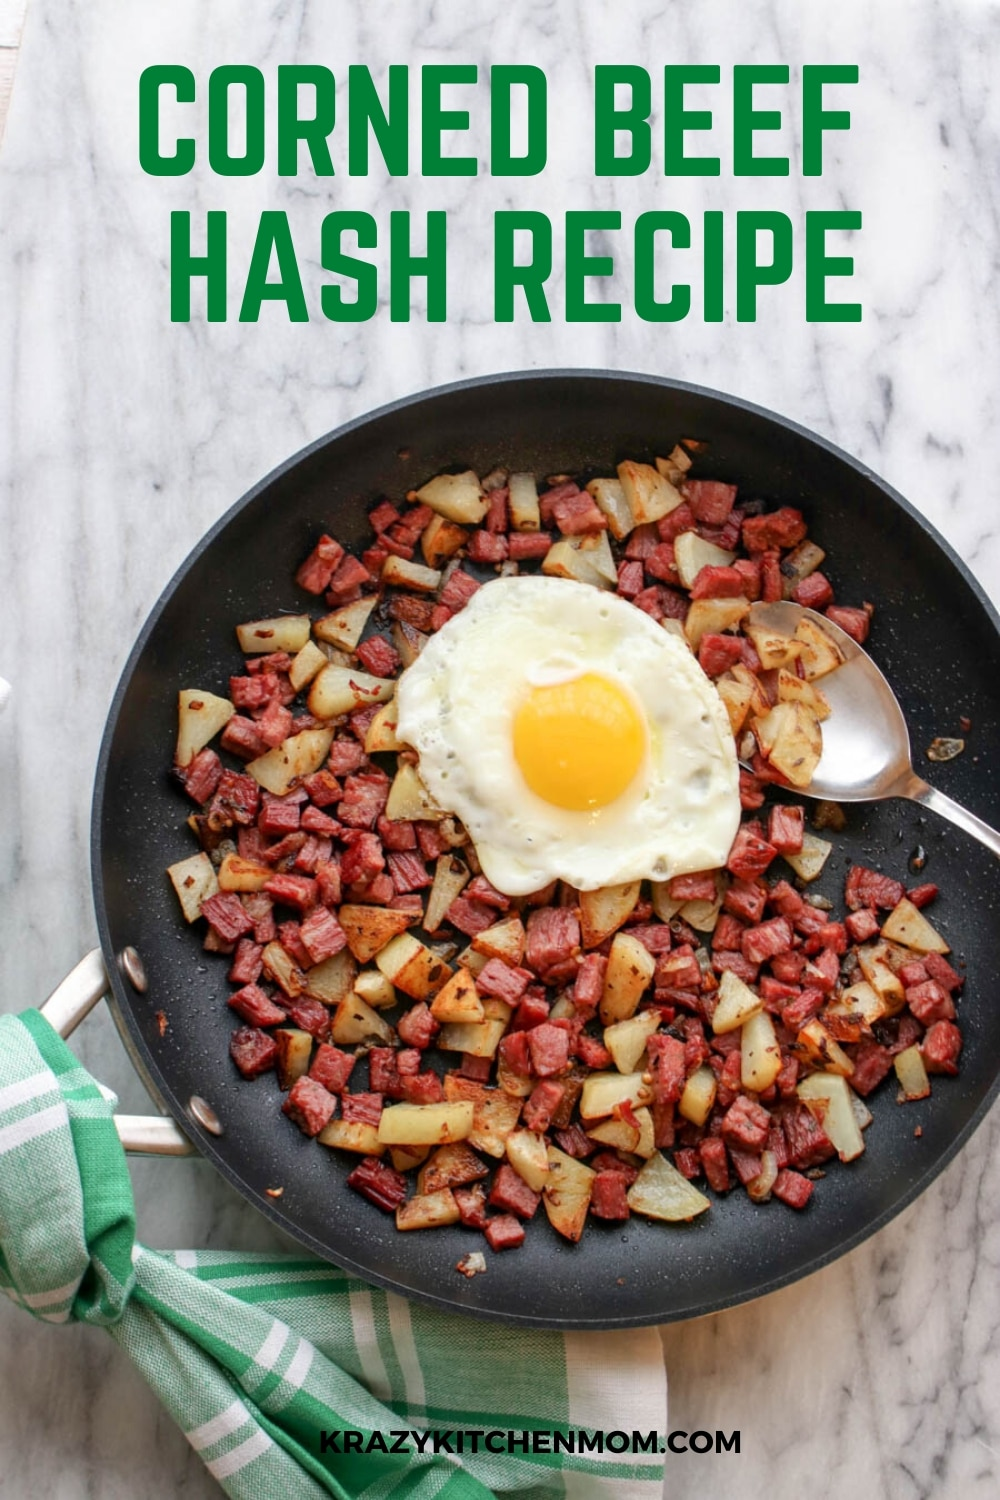 Don't know what to do with leftover corned beef? Make Homemade Corned Beef Hash. With only three main ingredients, it's an easy recipe.  via @krazykitchenmom